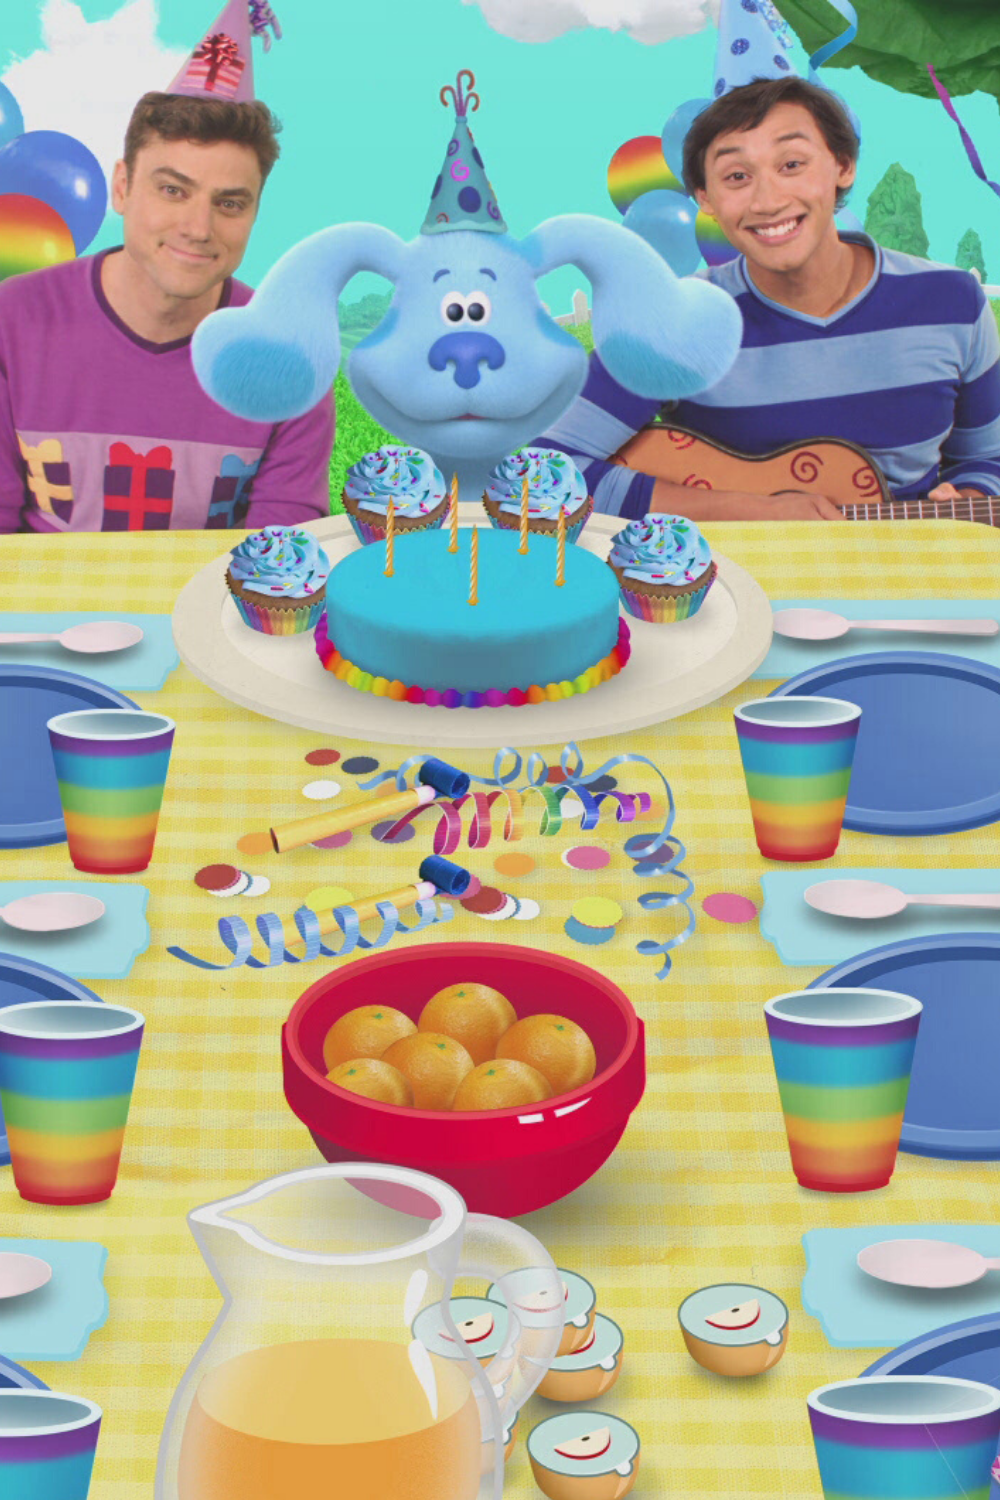 Blue's Clues Birthday : blue's, clues, birthday, MOMMY, EXPERT:, Blues, Clues, Birthday, Party, Special